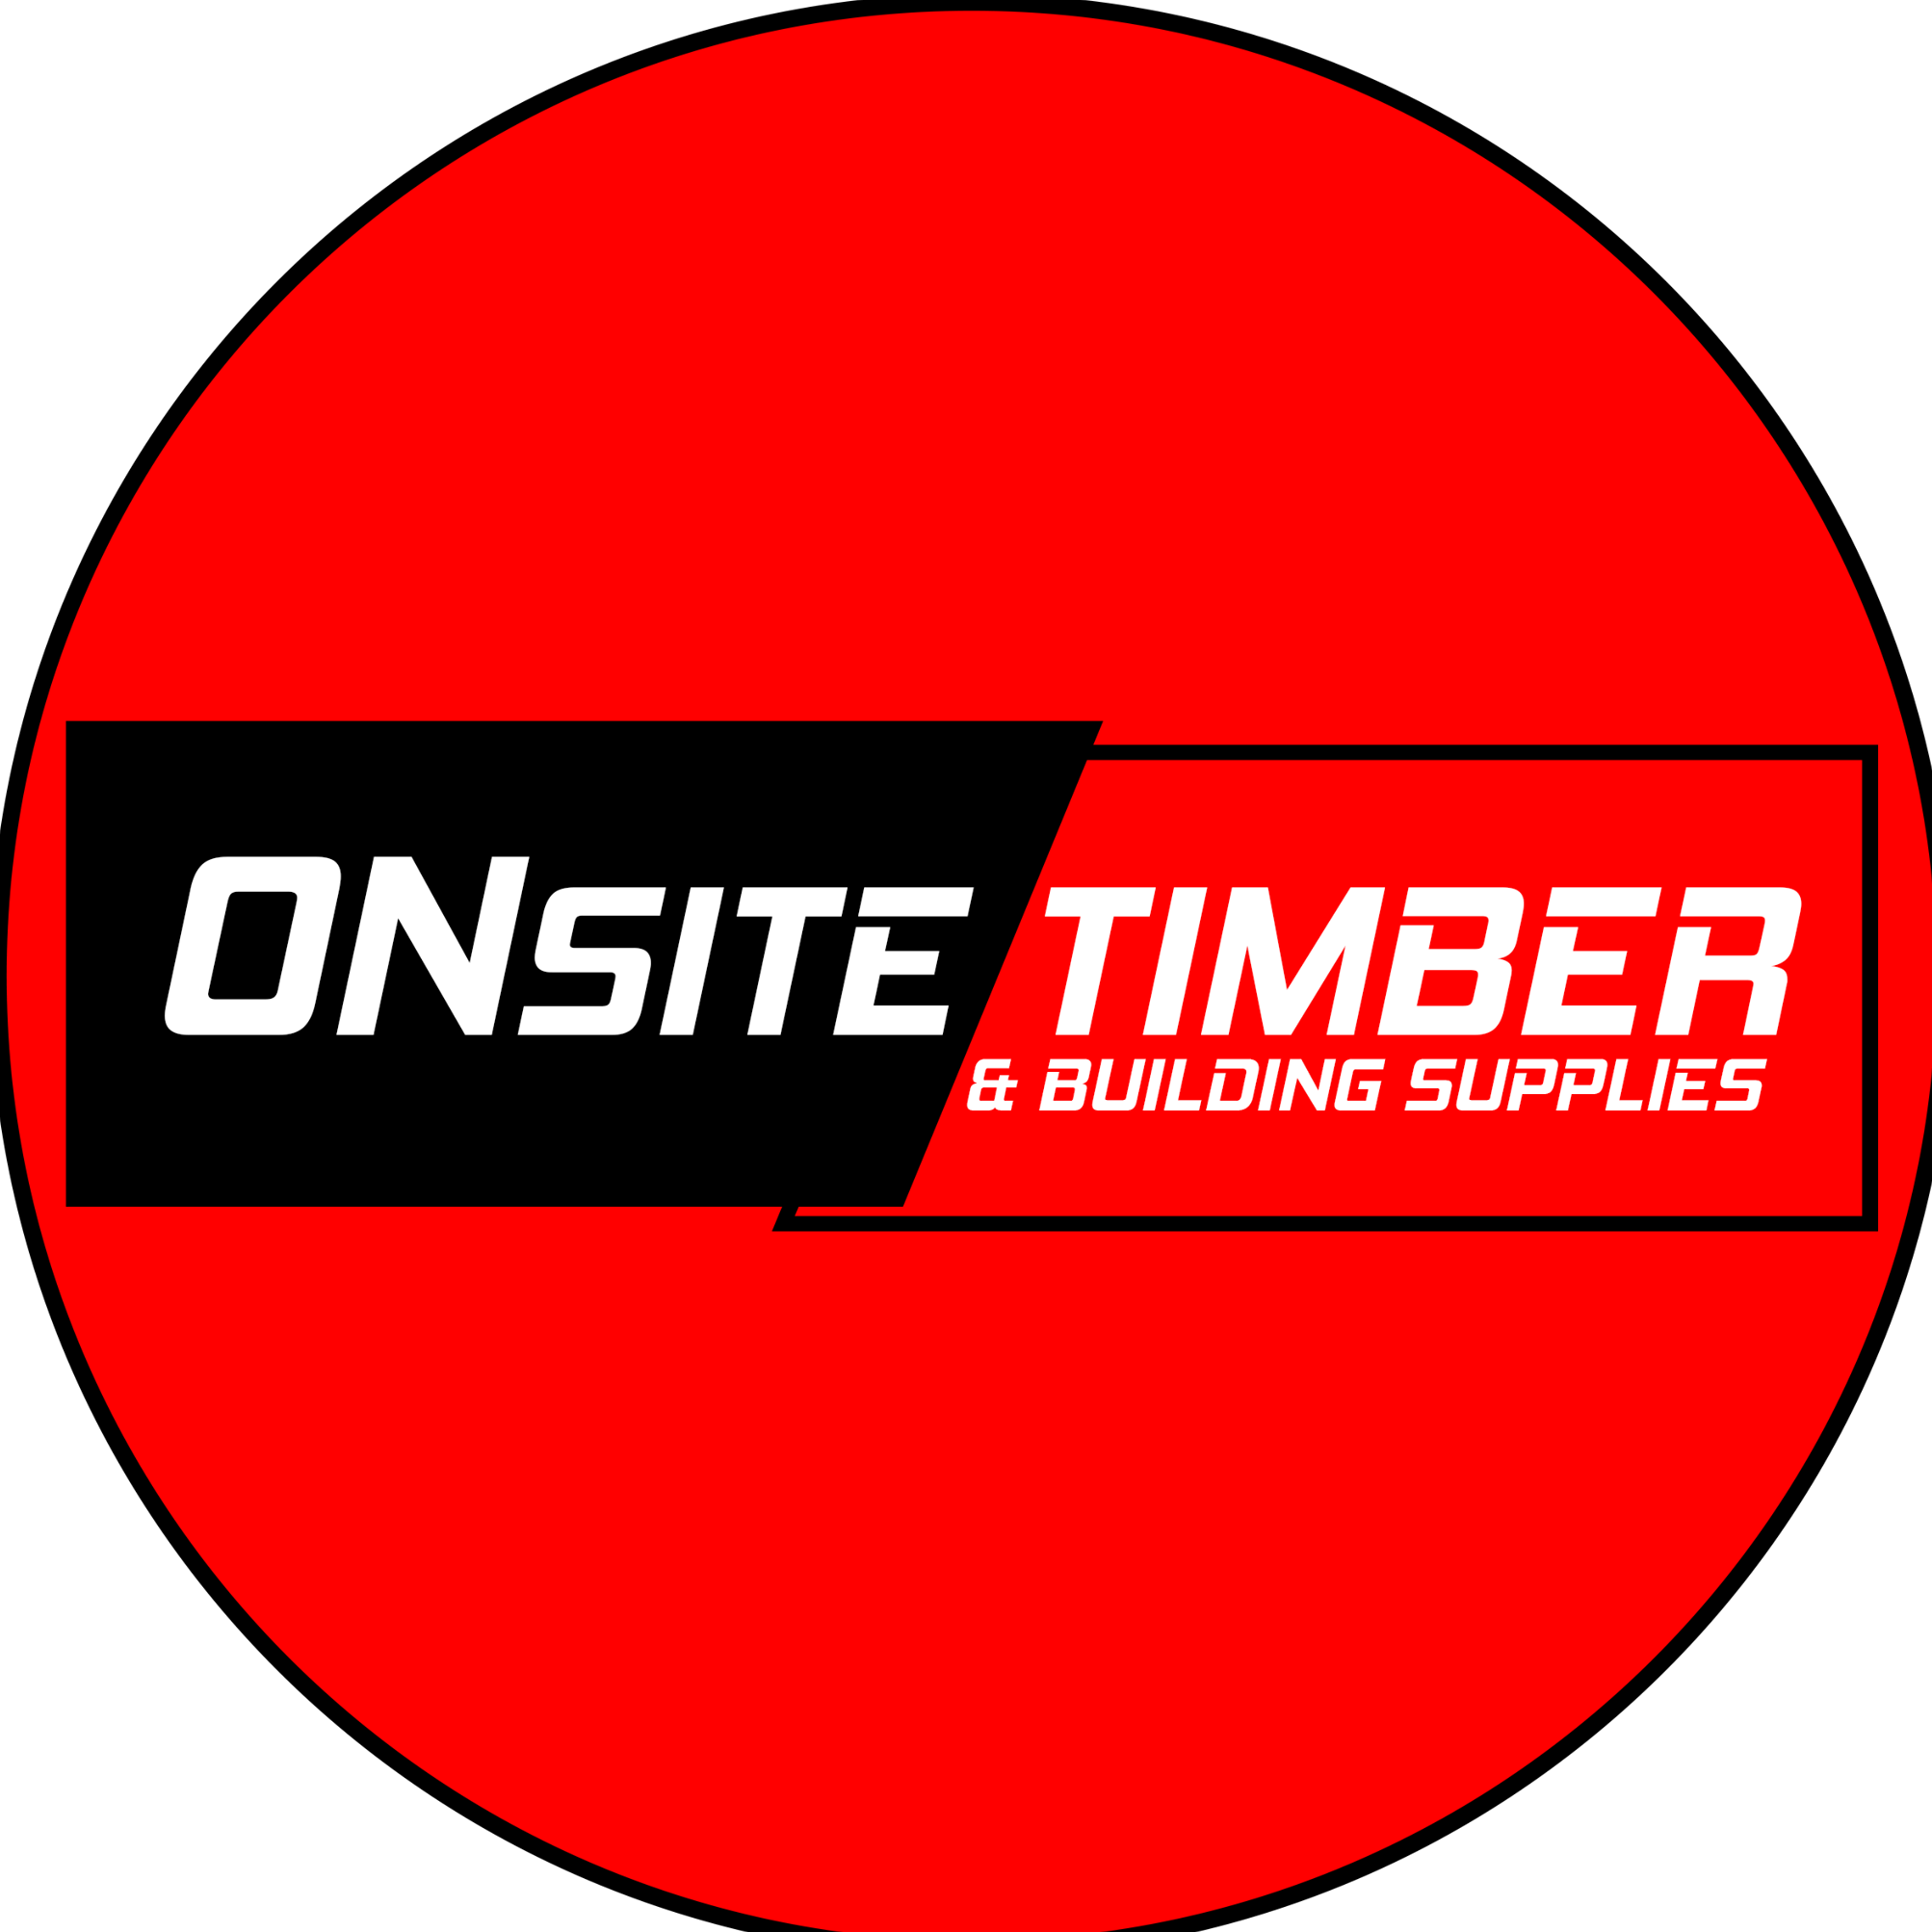 Onsite Timber and Building Supplies